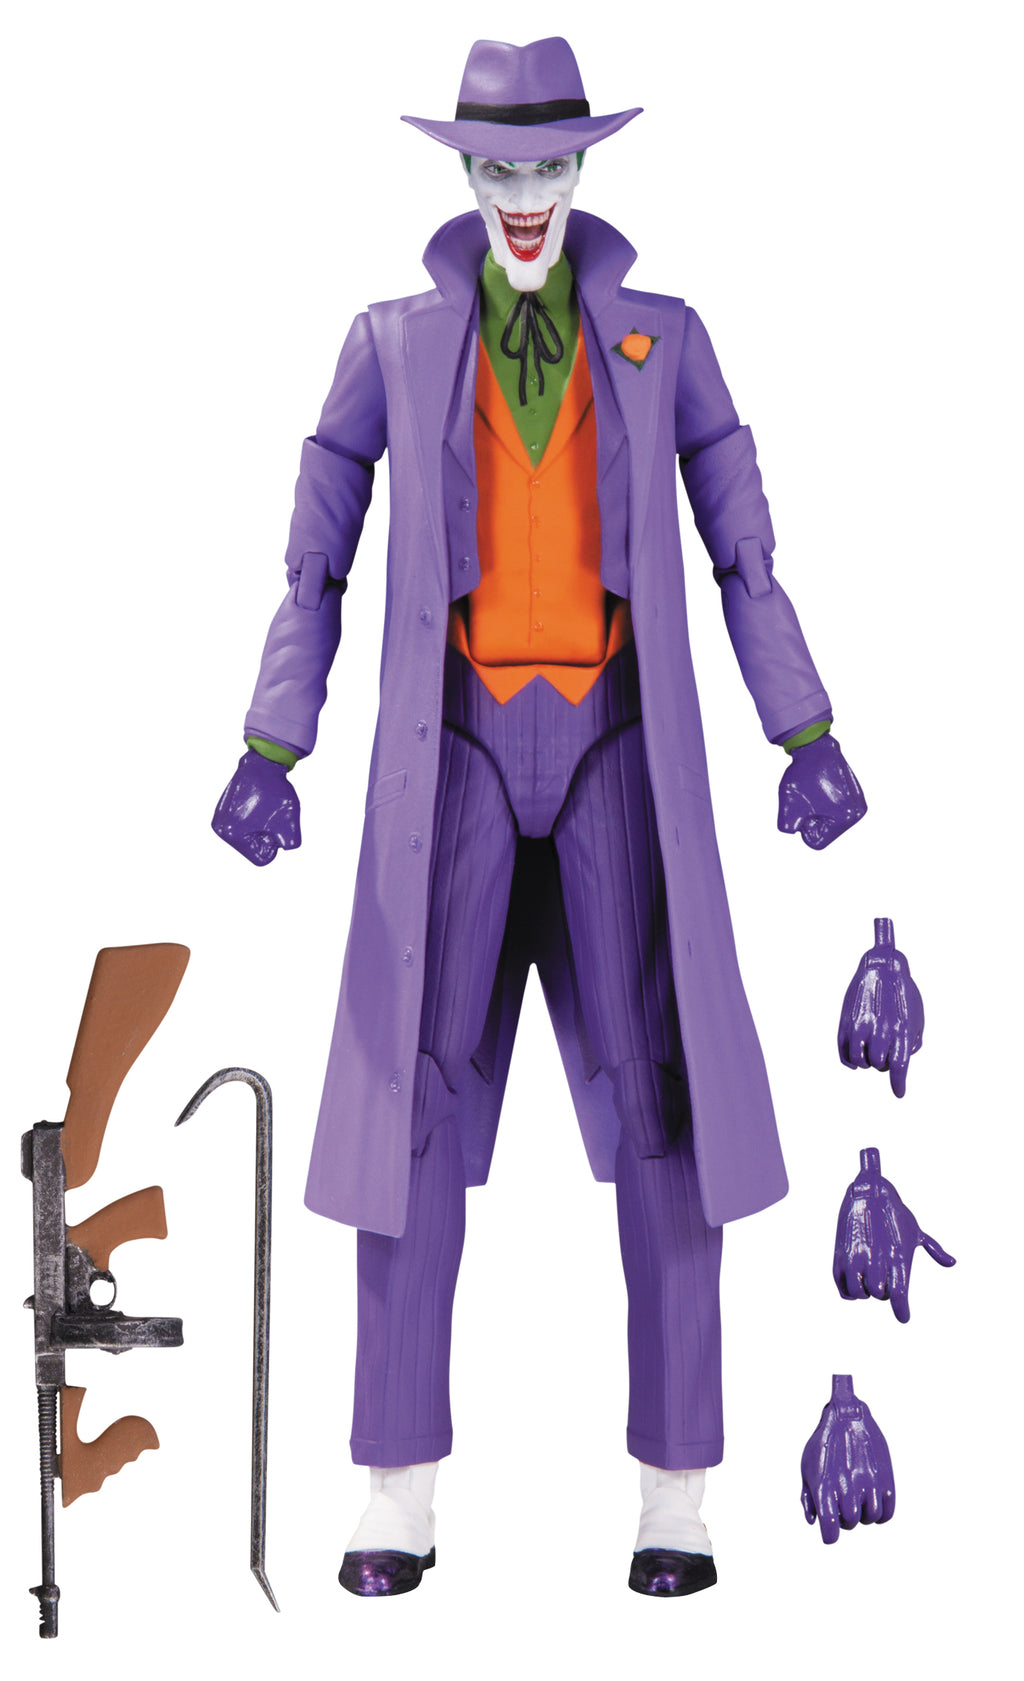 DC Comics -DC Icons Death in the Family Joker Action figure